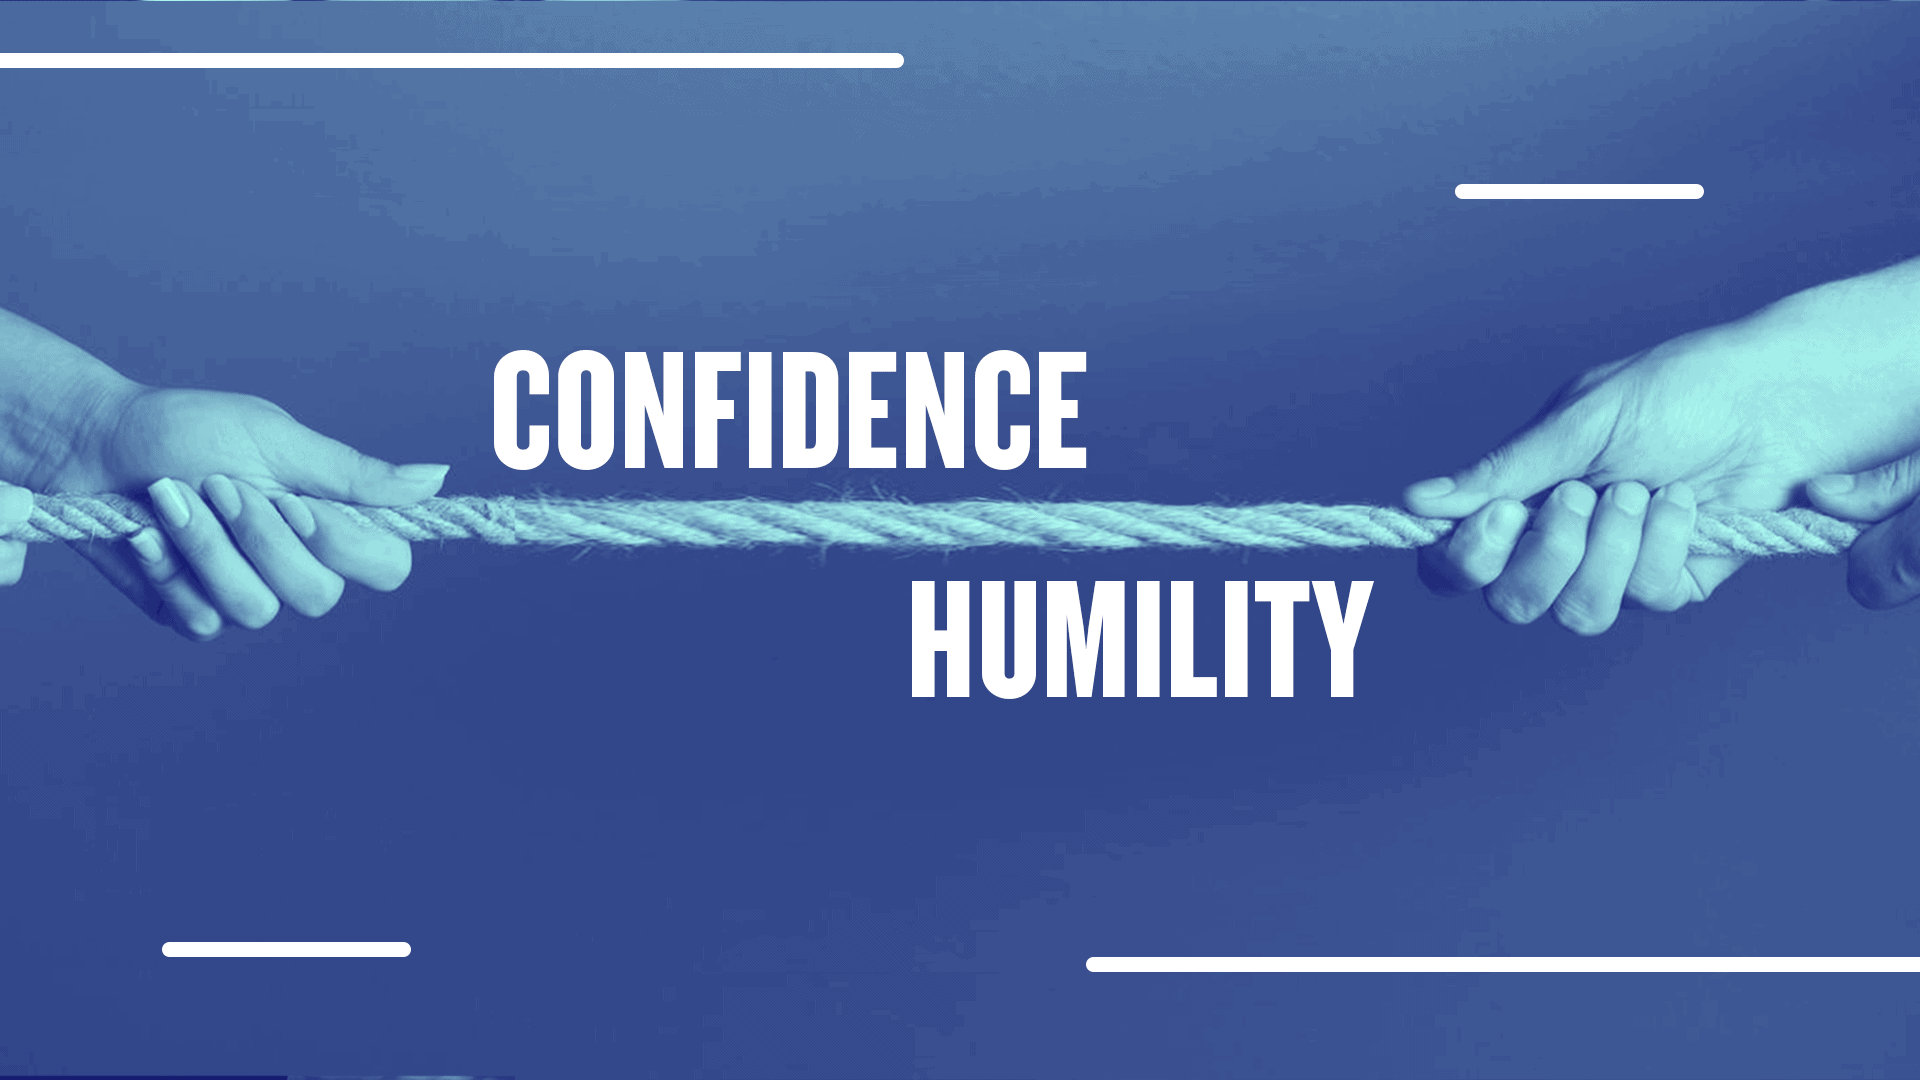 Confidence Humility